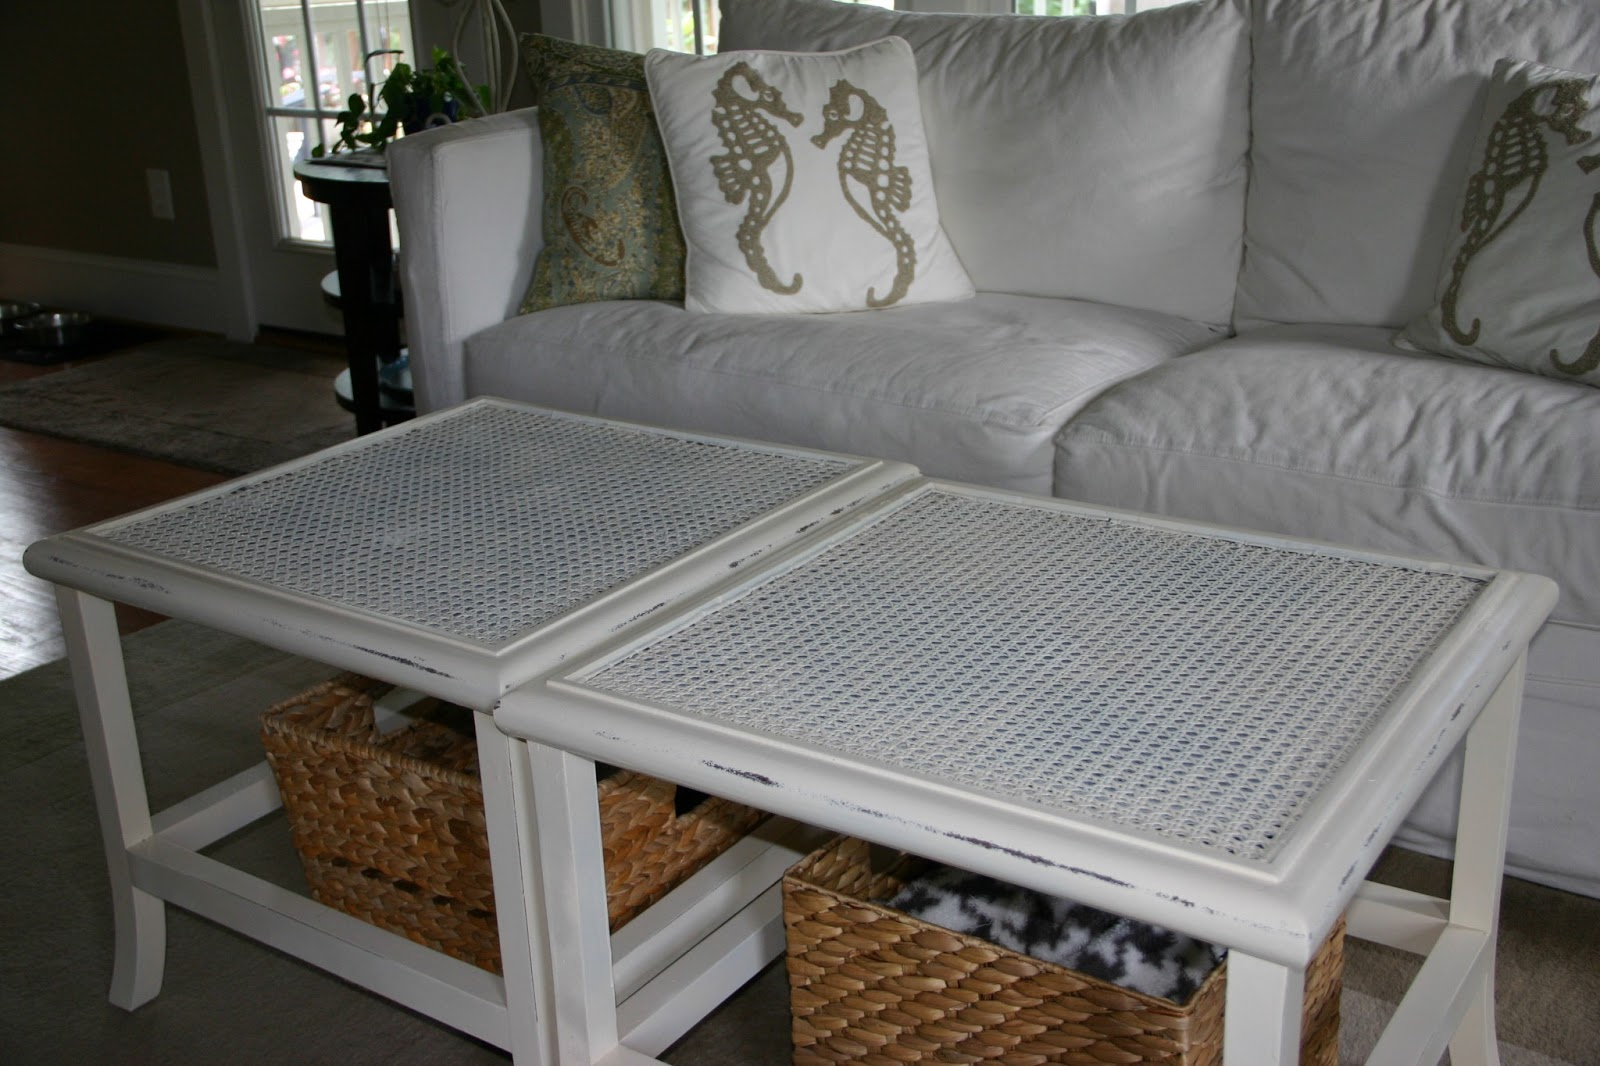 cottage blue designs: goodwill coffee table project